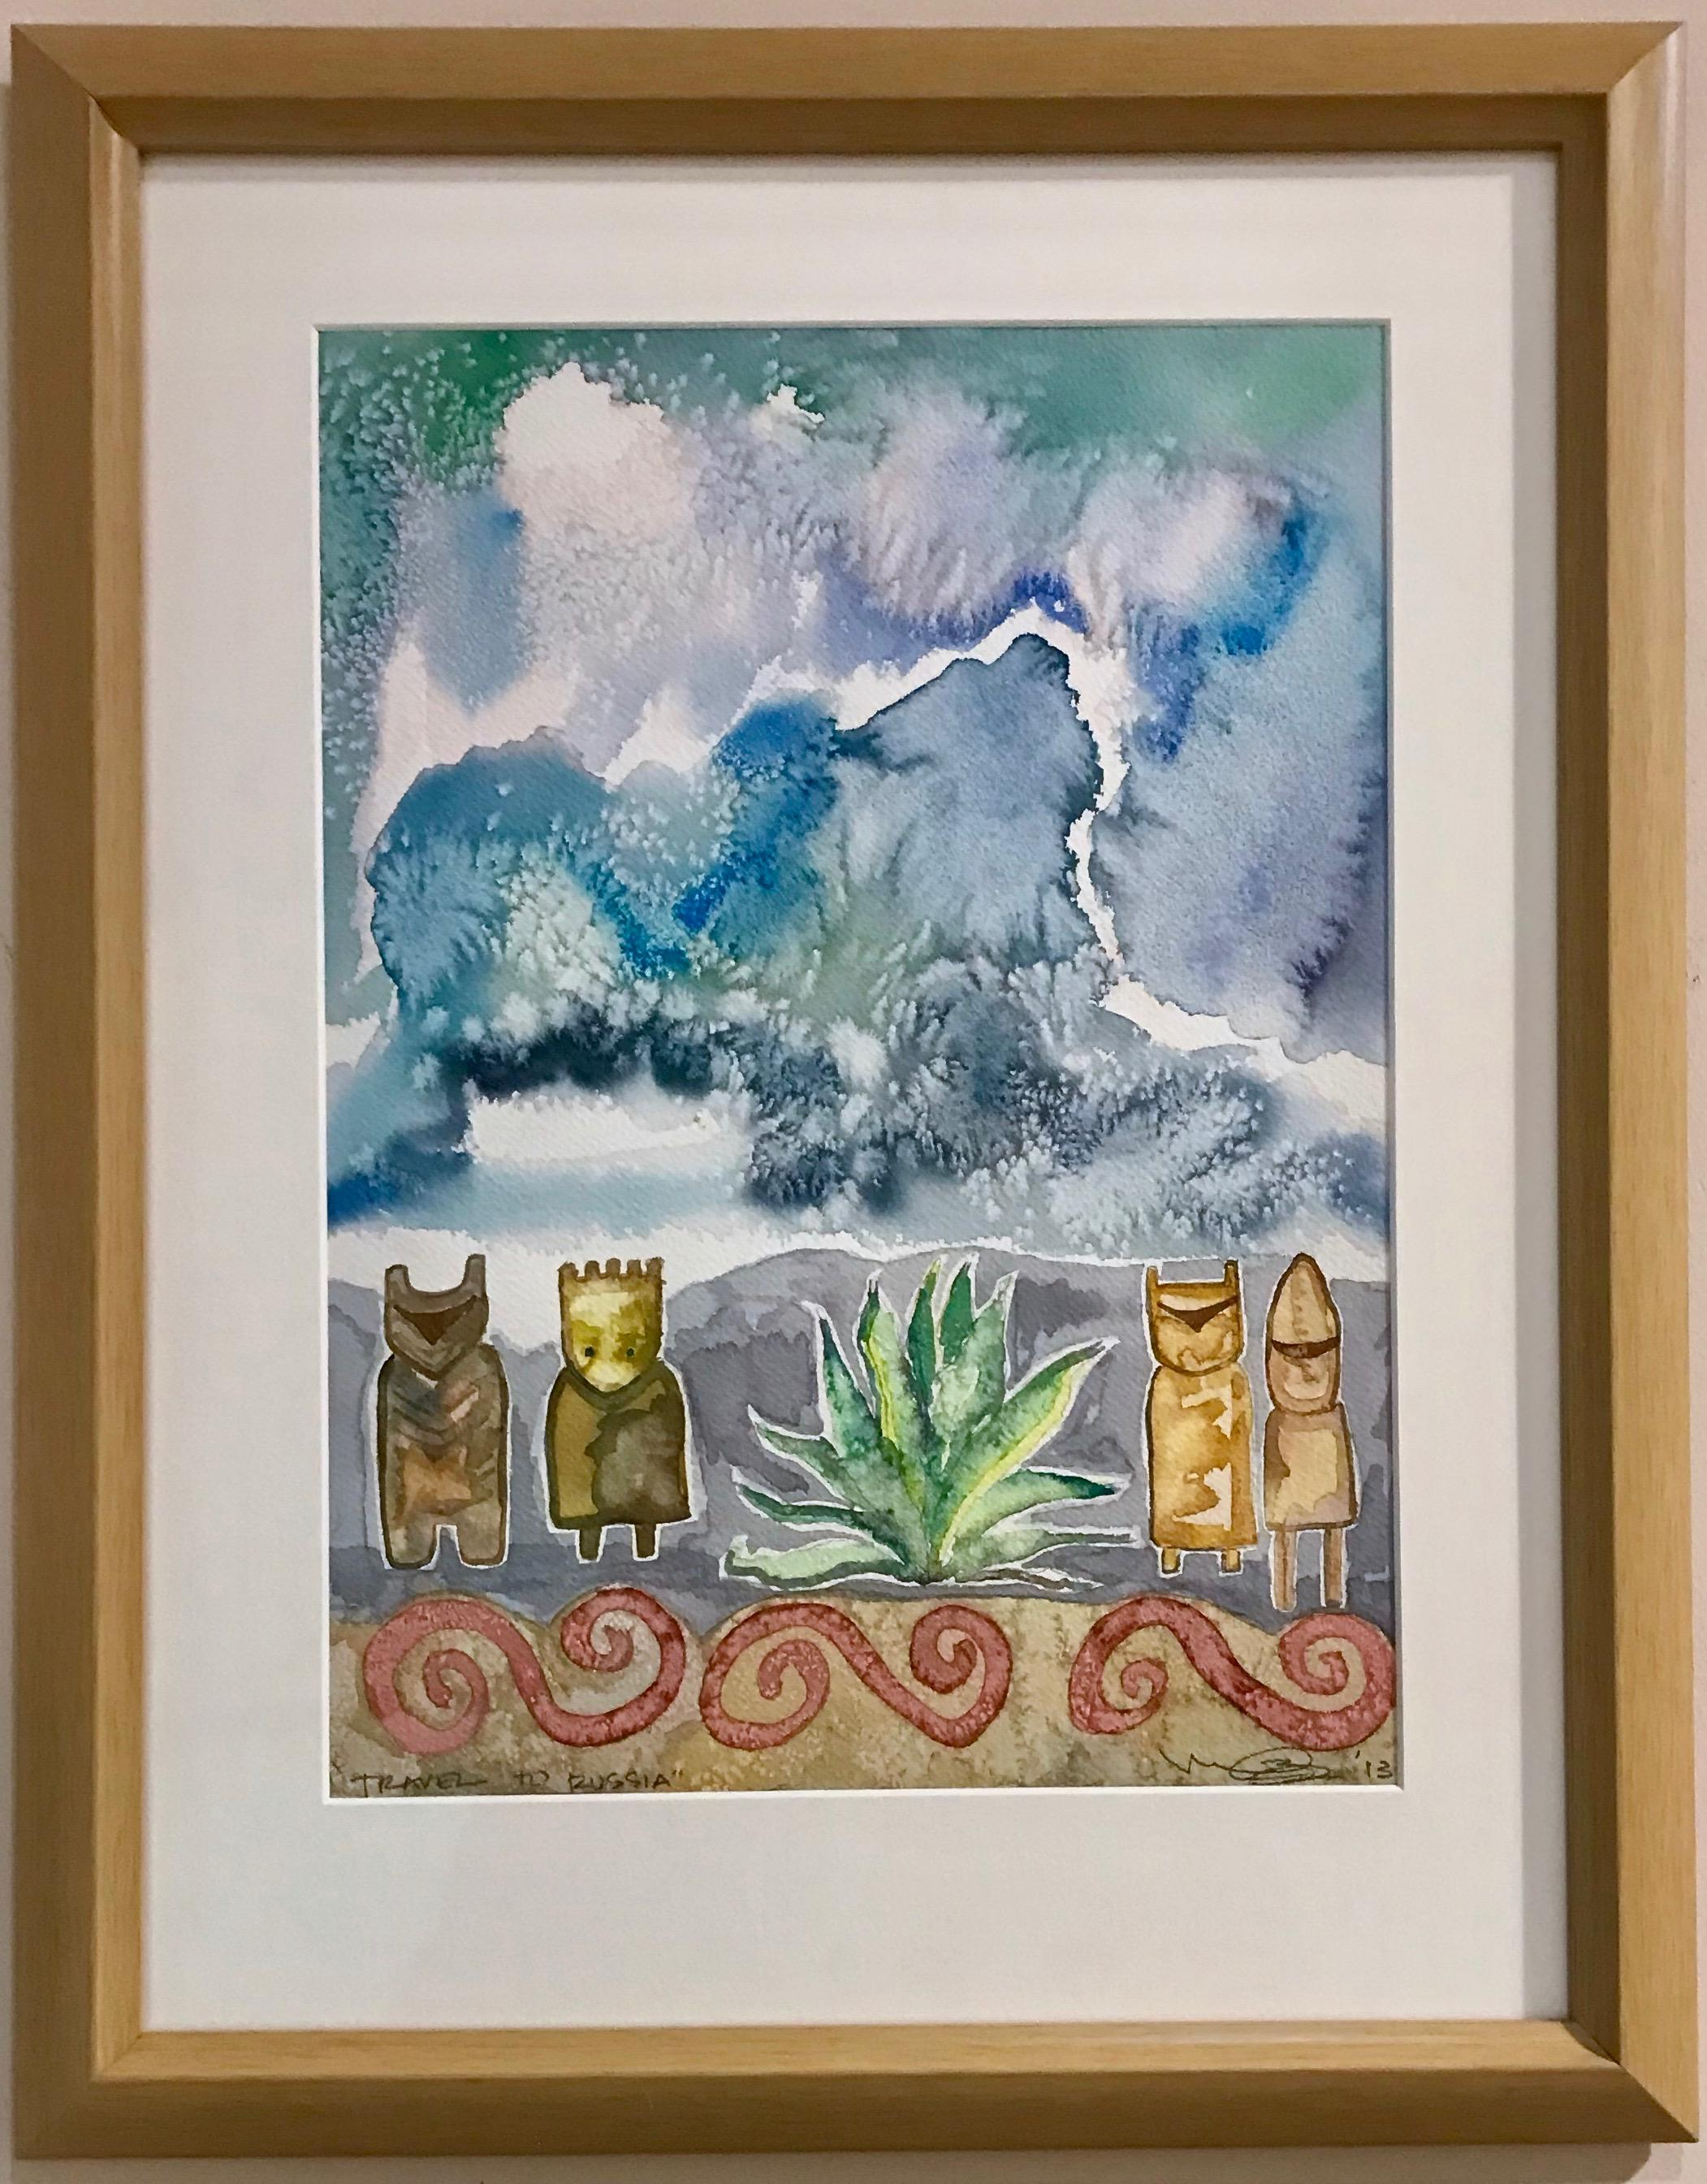 Travel to Russia, painting by Melanie Yazzie, gouache, watercolor, blue, white